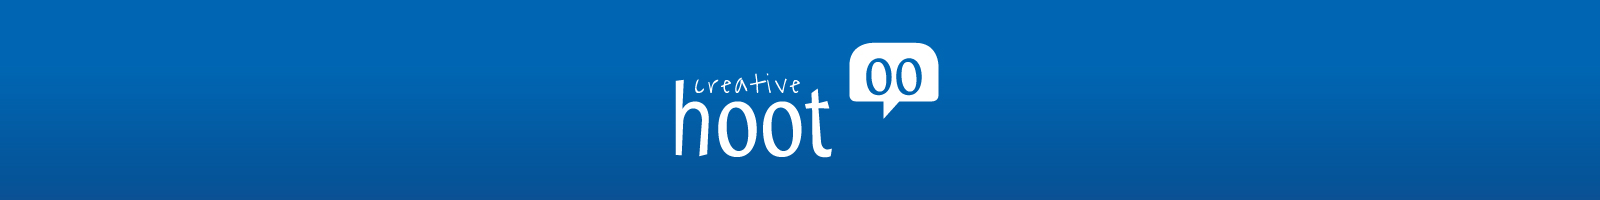 Creative Hoot – Inspiring Creativity | Design & Marketing Agency based in Cumbria